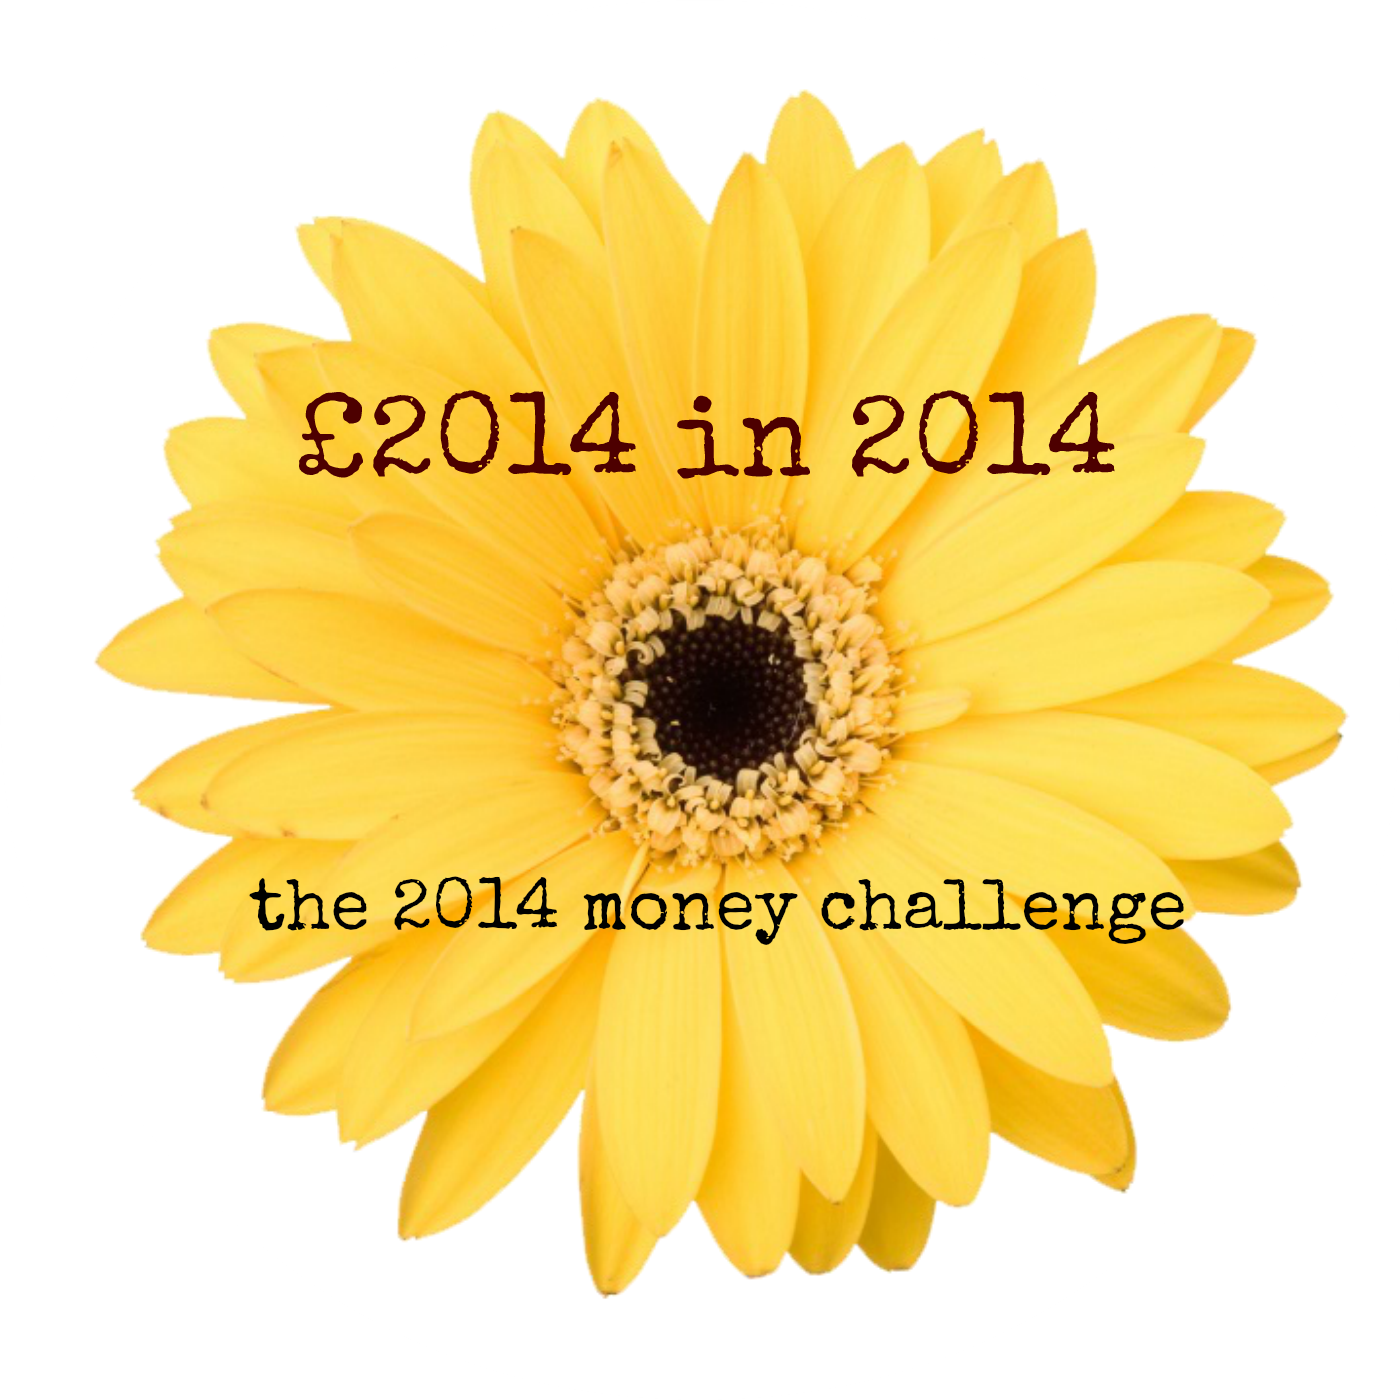 £2014 in 2014 Money Challenge